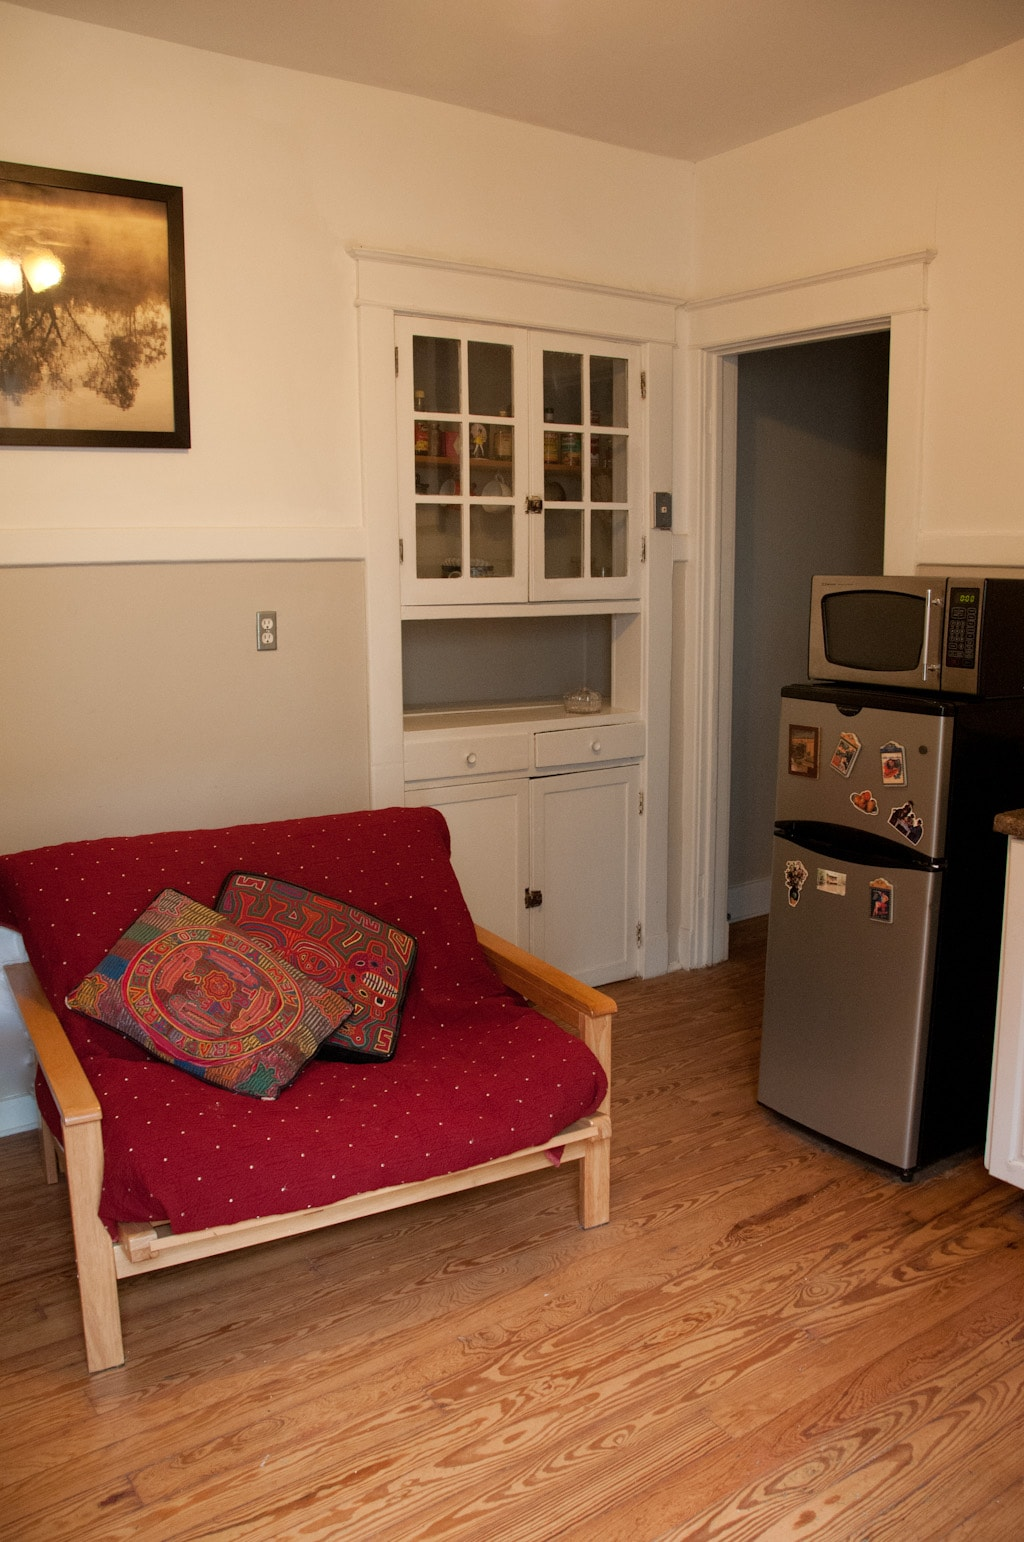 Fold out twin futon couch bed, super comfy with studio fridge and microwave, cupboard filled with necessities